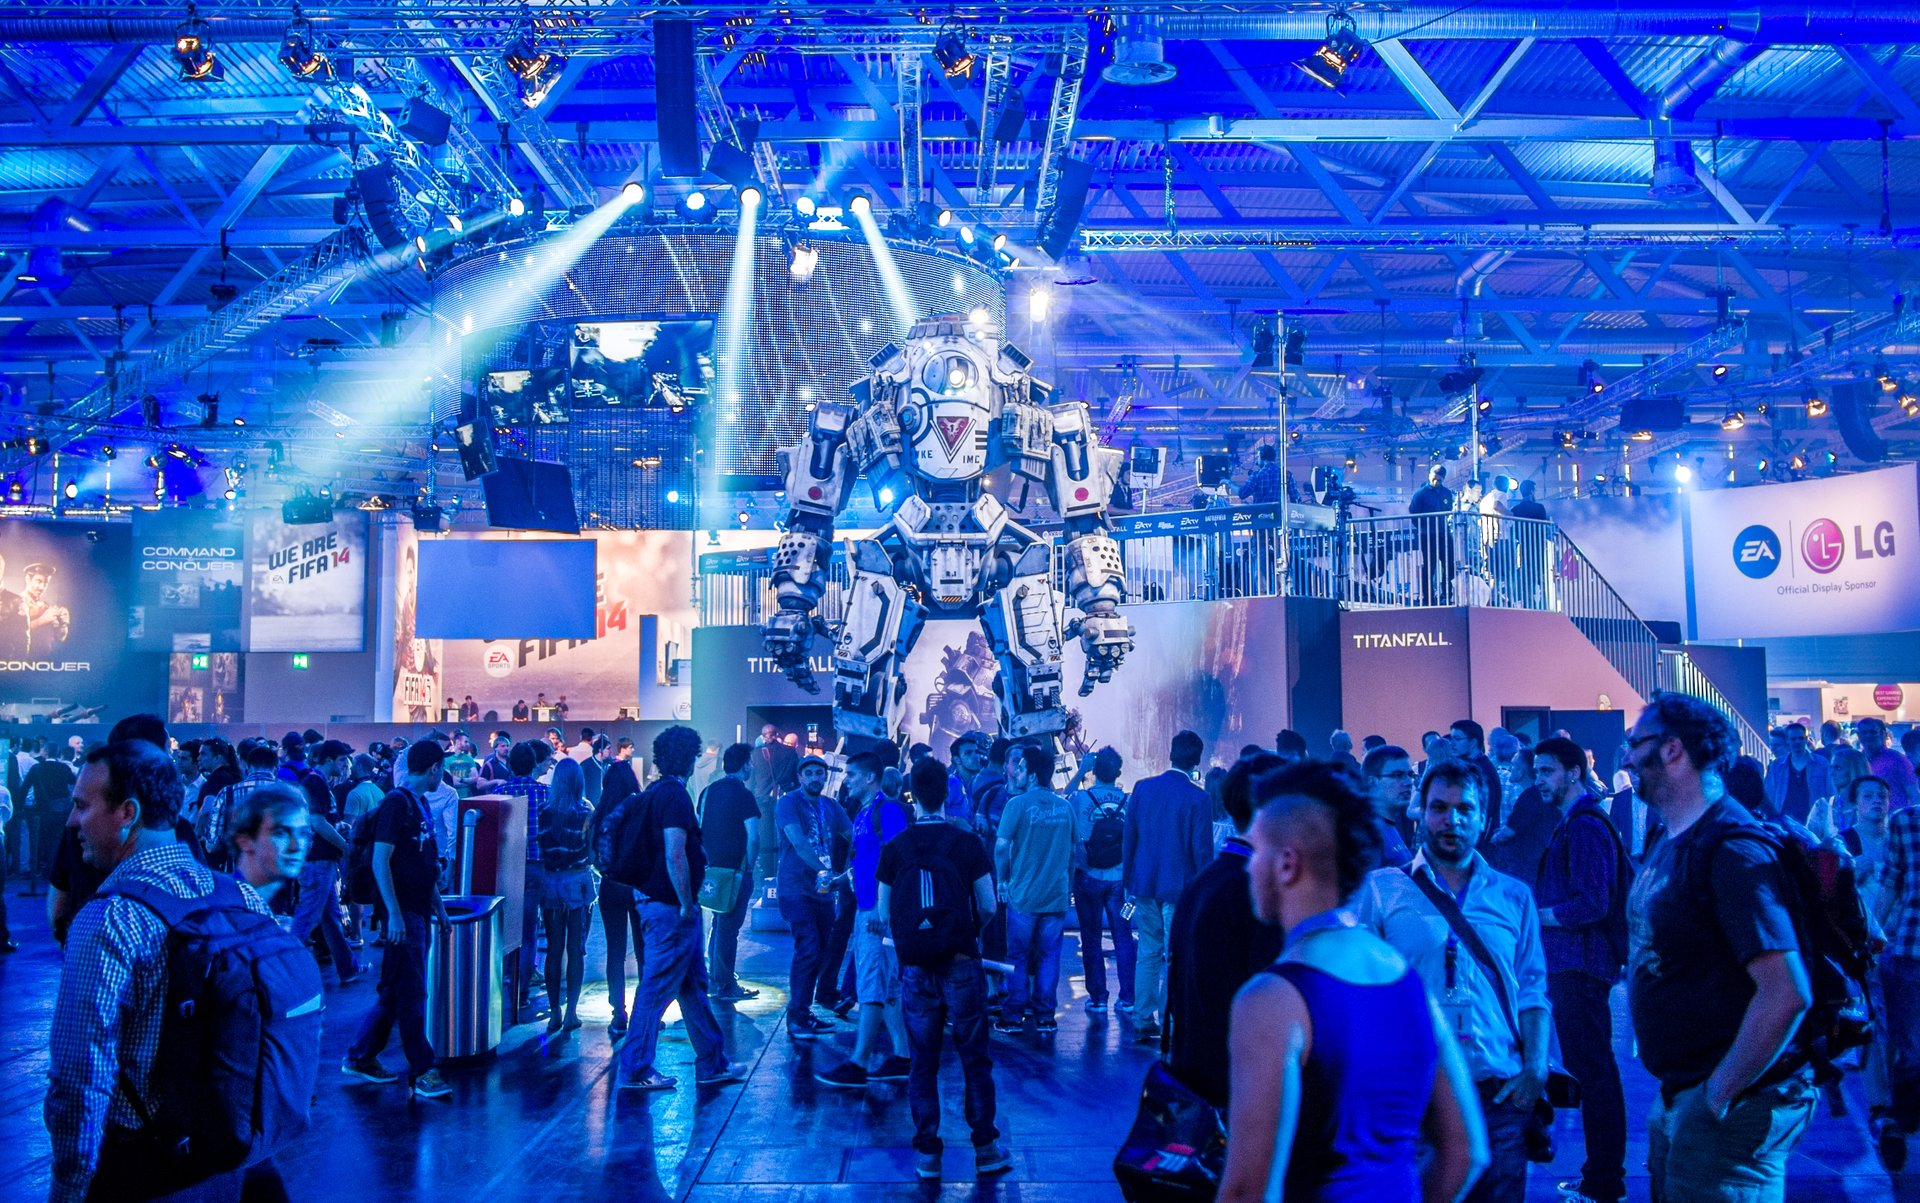 Gamescom in Germany 2019 - Best Time